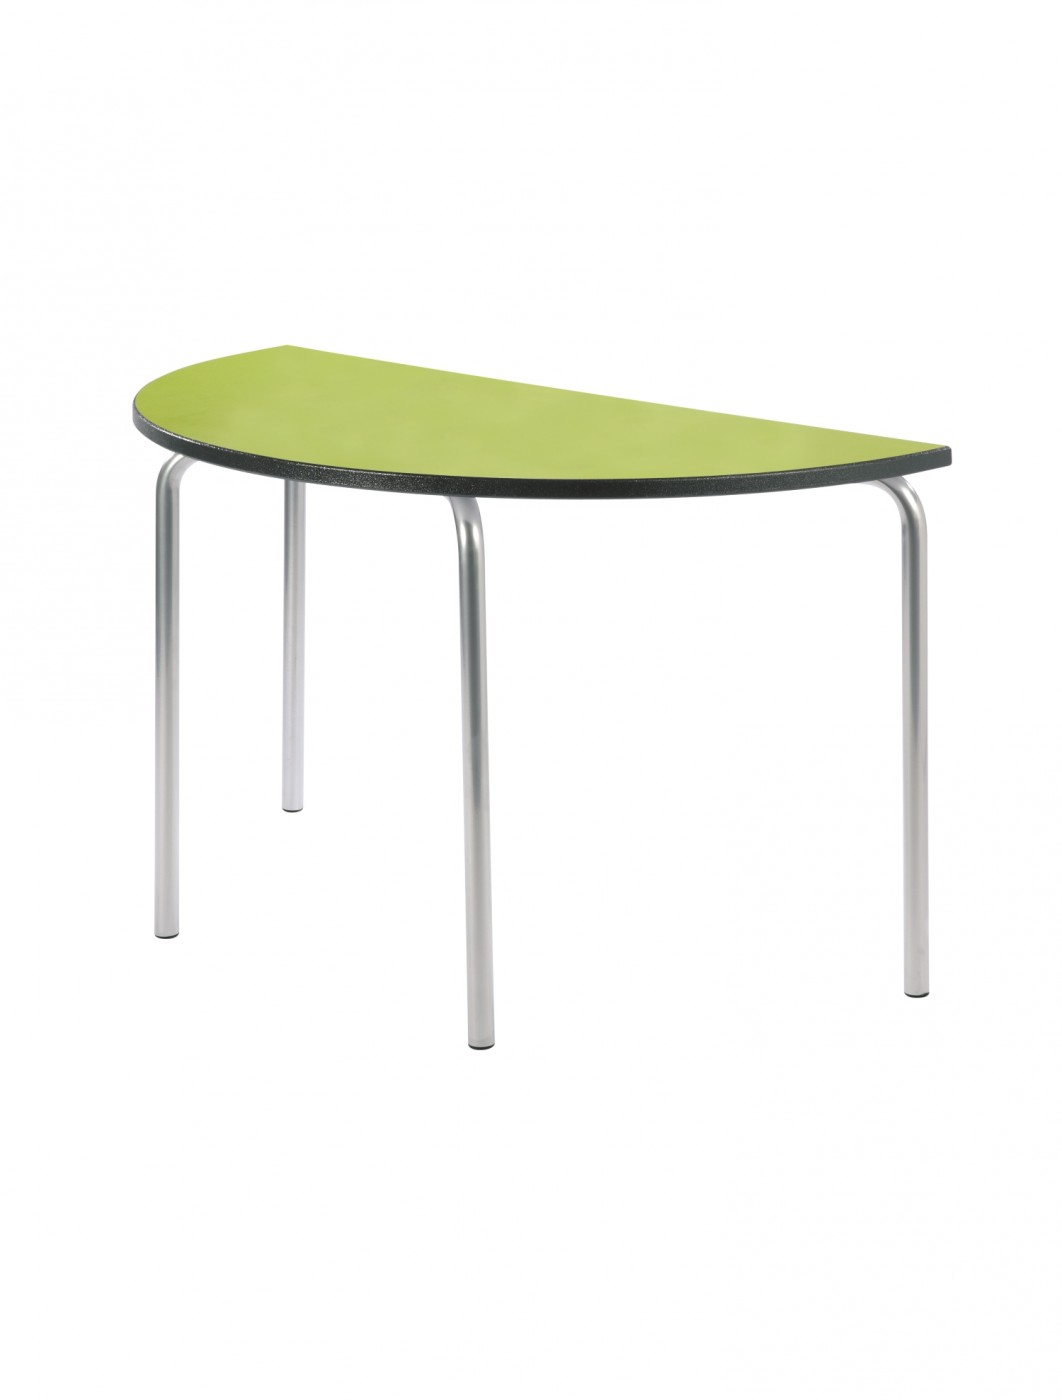 zoom table mform work furniture adjustable height at classroom tables